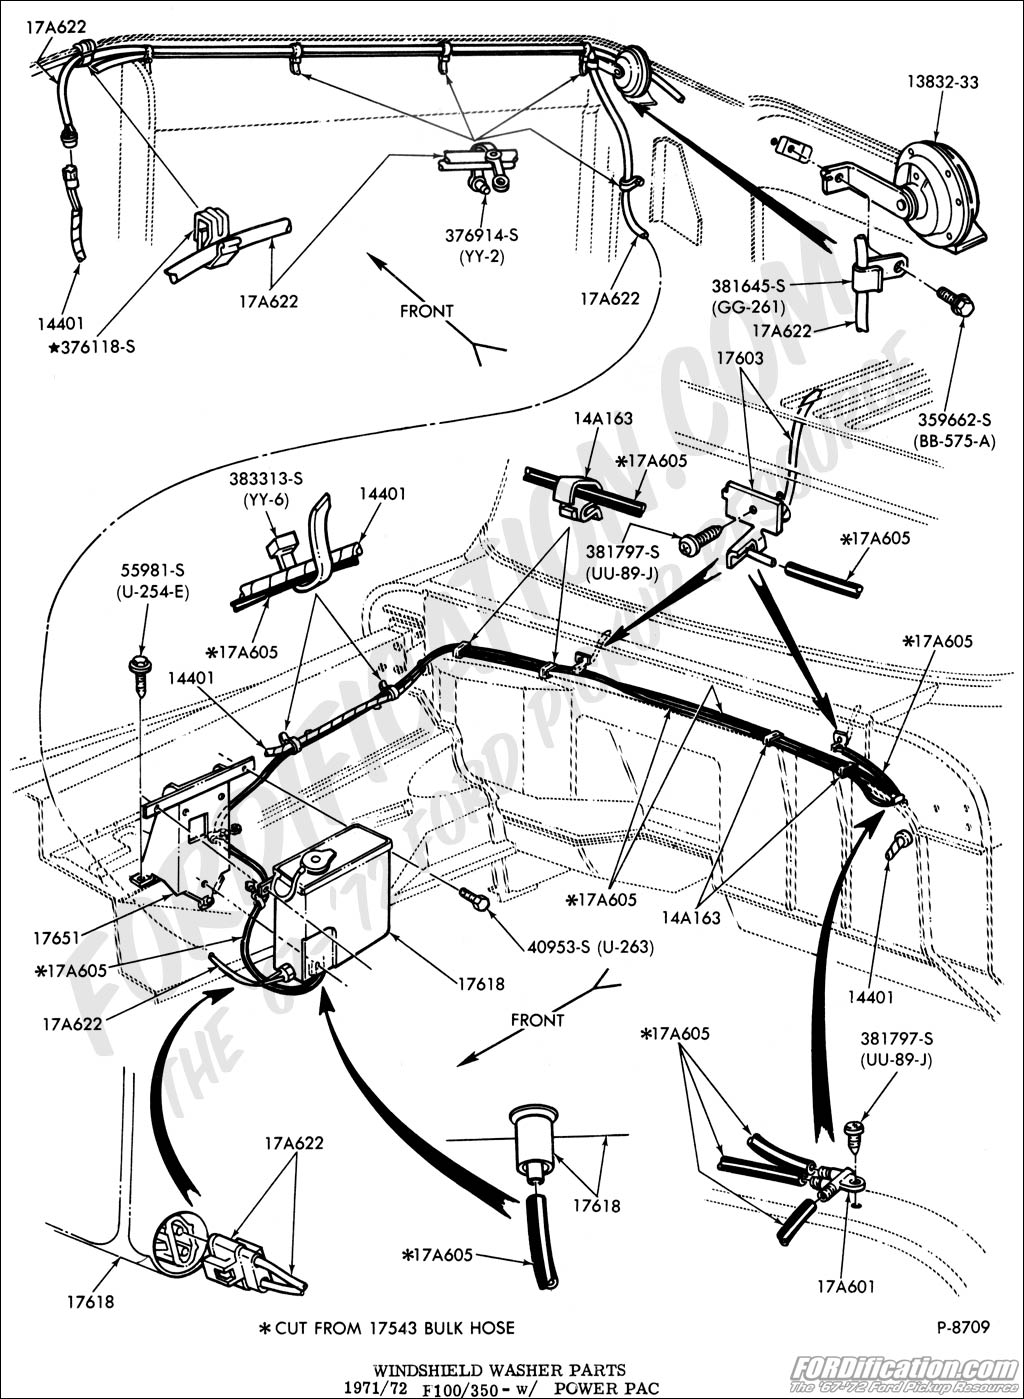 Vacuum Diagram For 97 Oldsmobile Cutlass 1997 Oldsmobile Cutlass